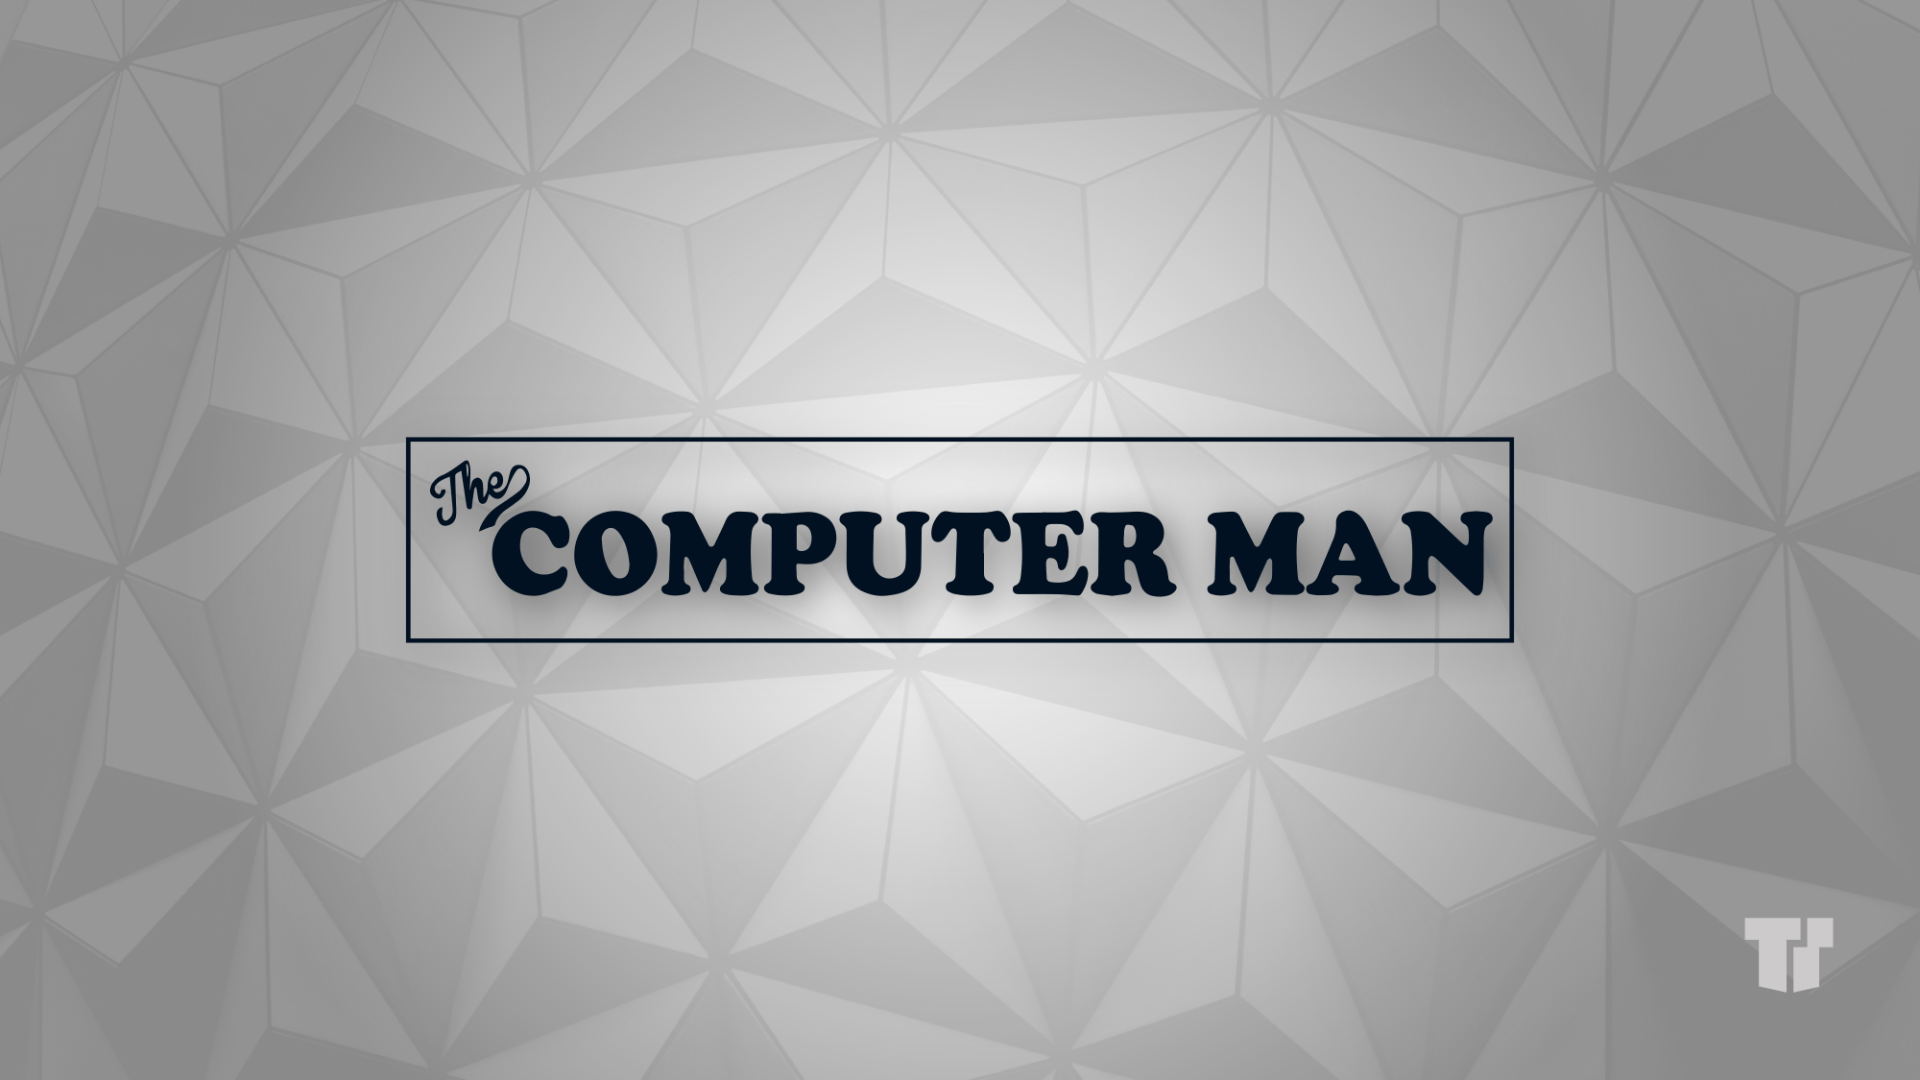 The Computer Man cover image